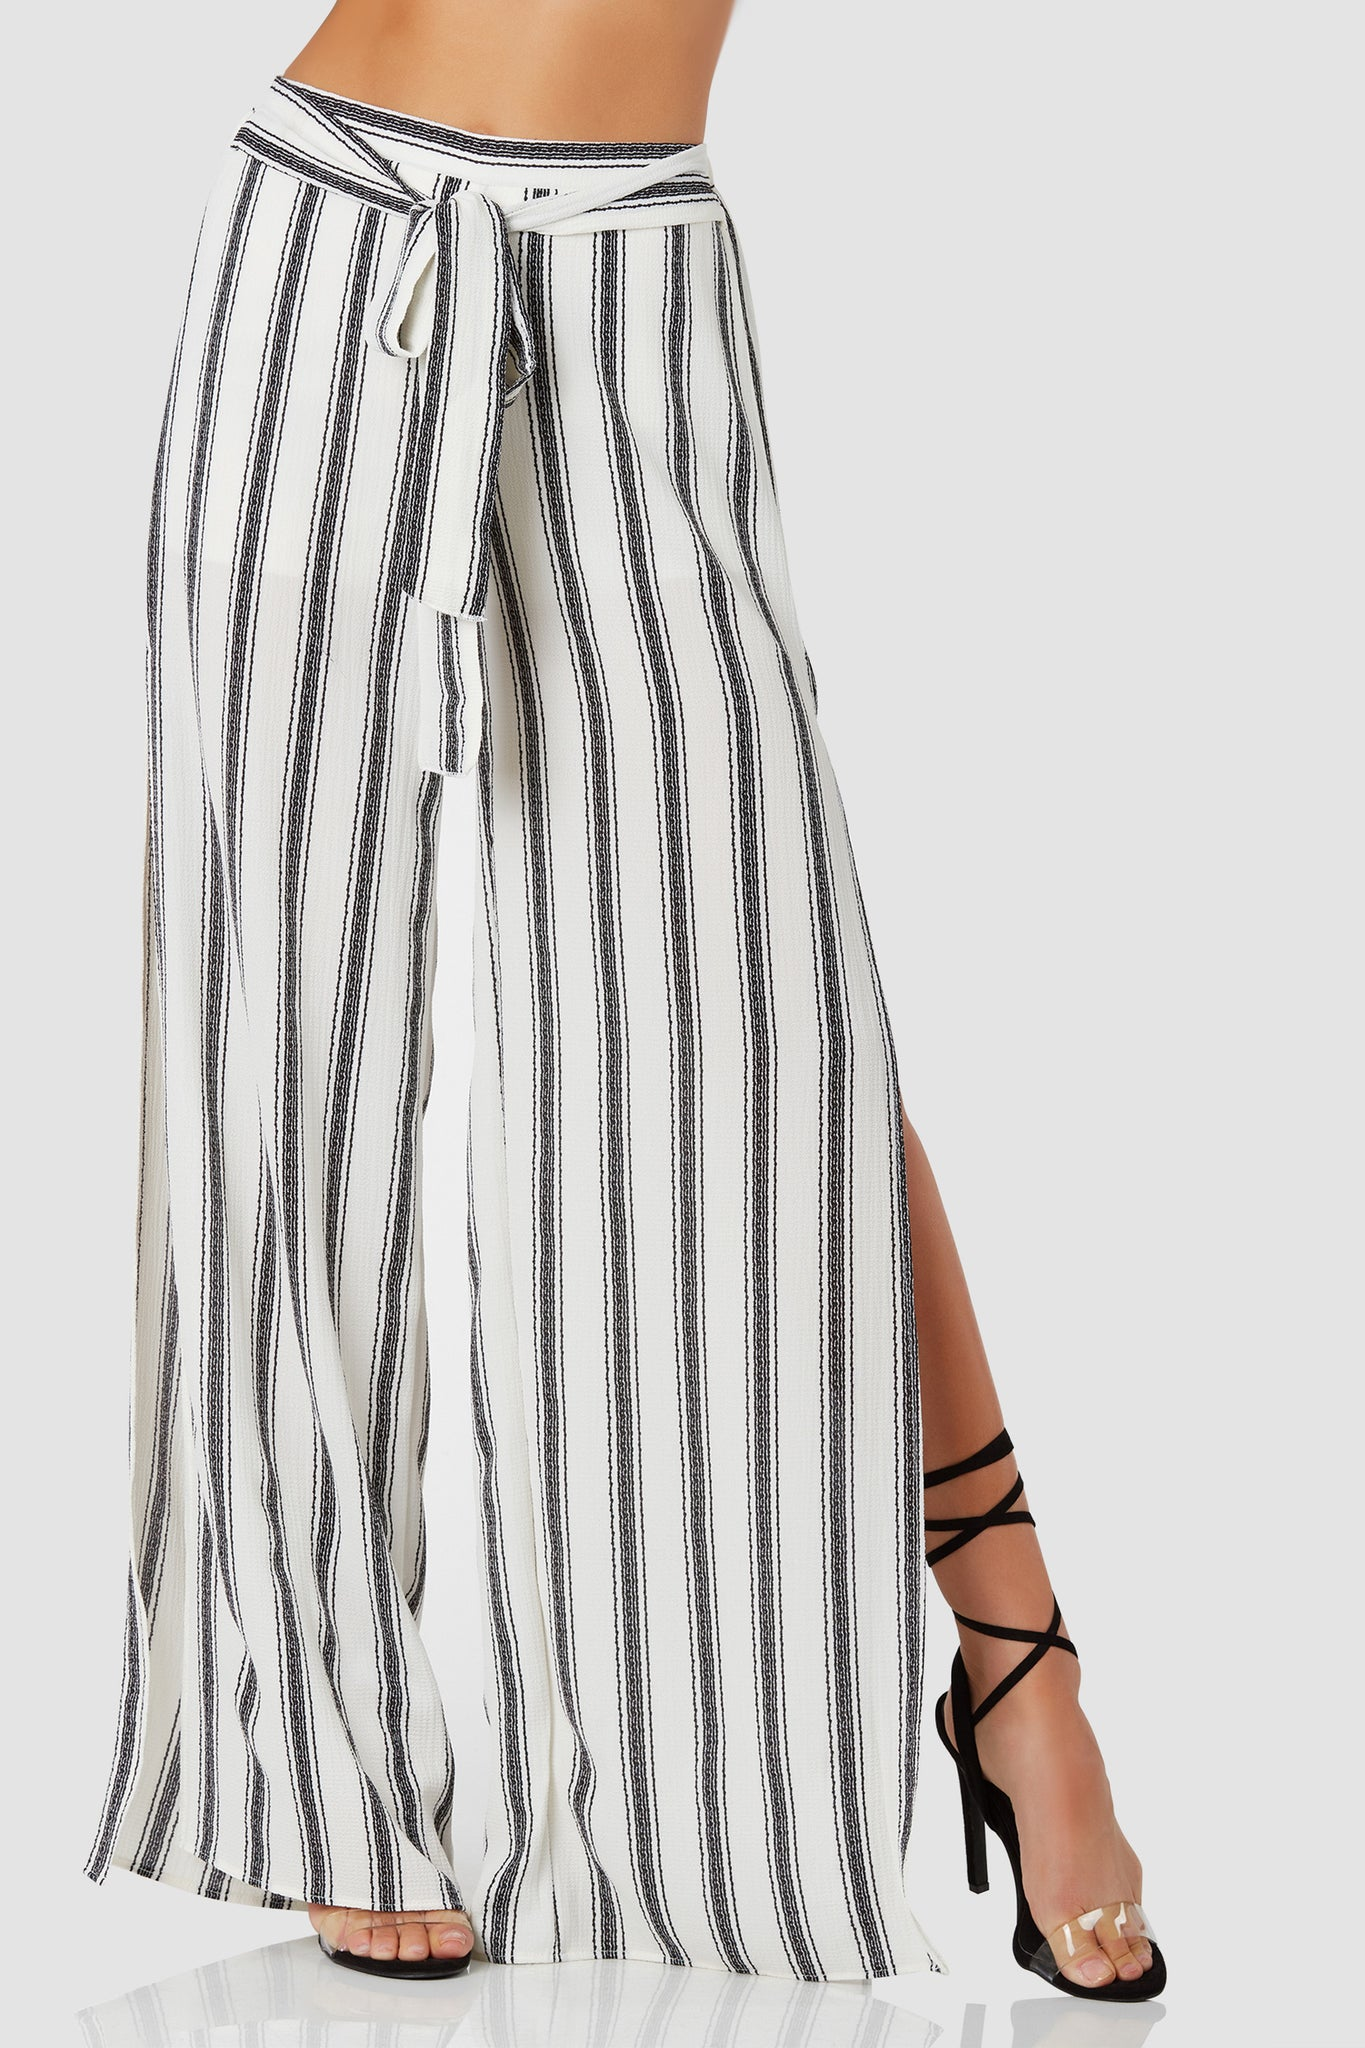 Chic high waist slacks with stripe patterns throughout. Waist tie detailing with bold side slits.